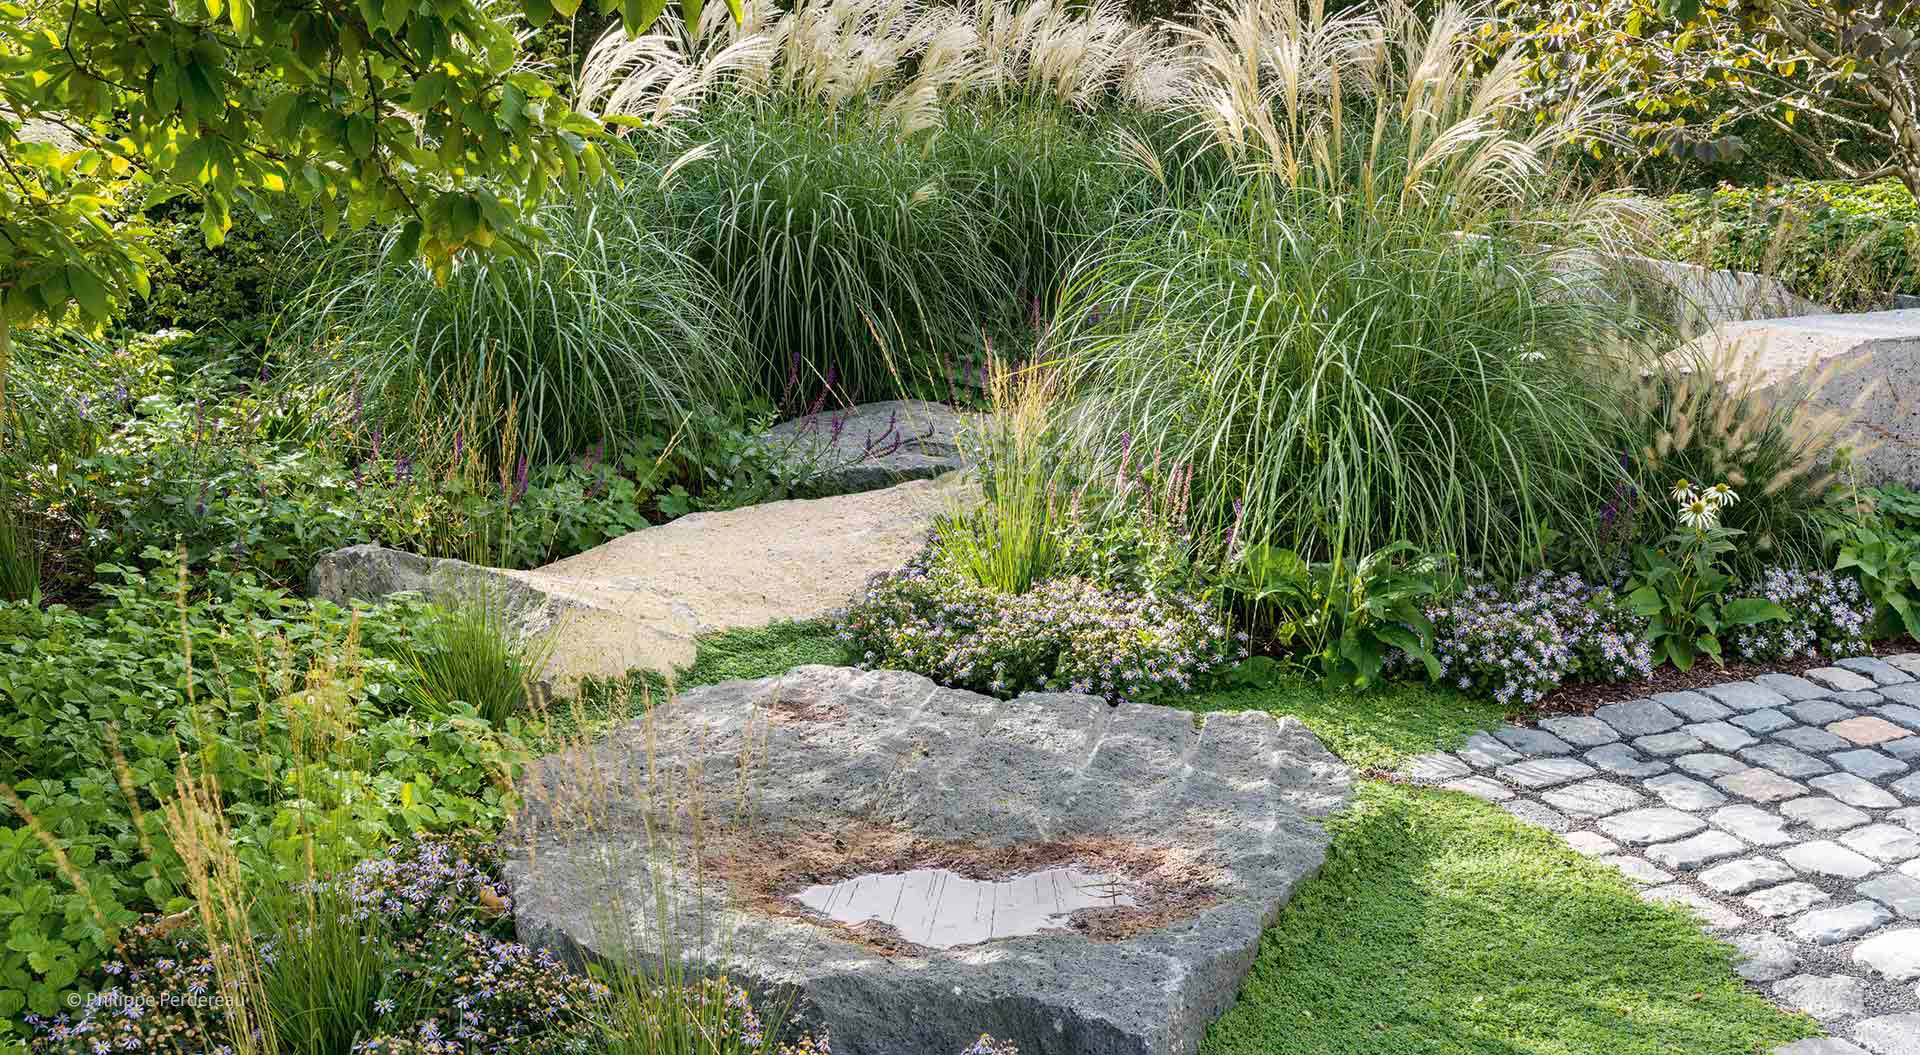 Grasses, stones and plants combined